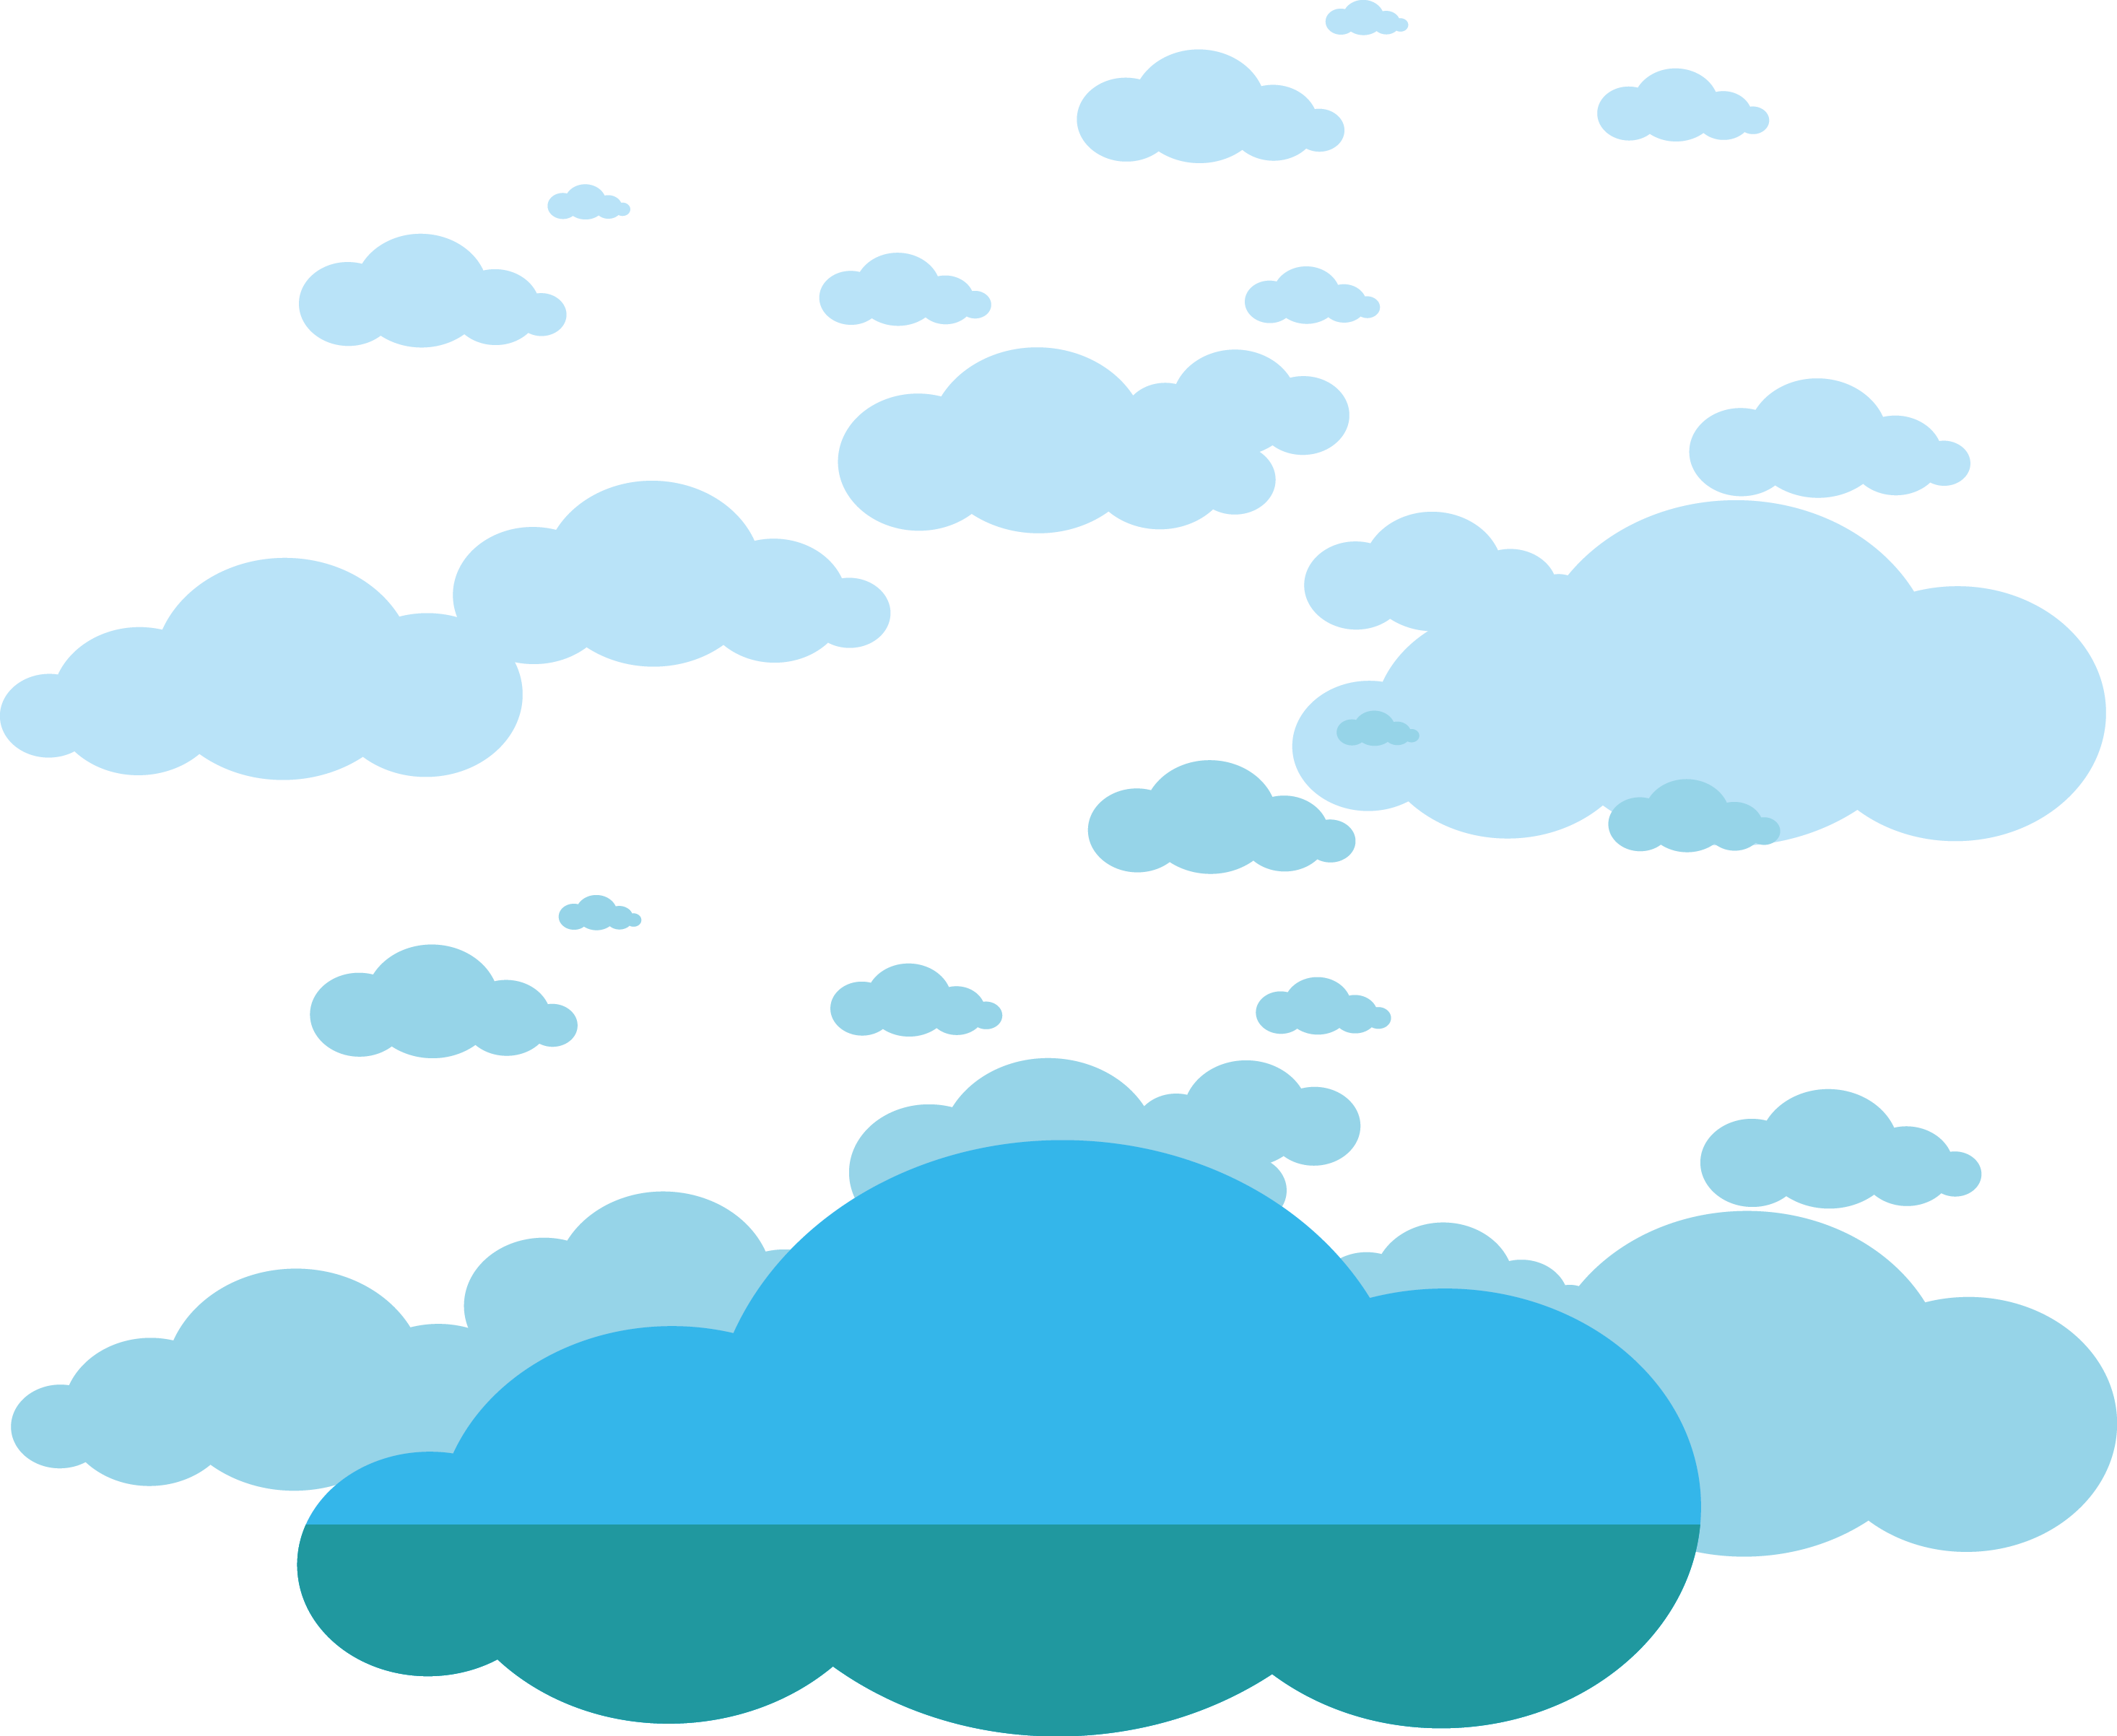 Cloud vector png. Clouds material transprent free